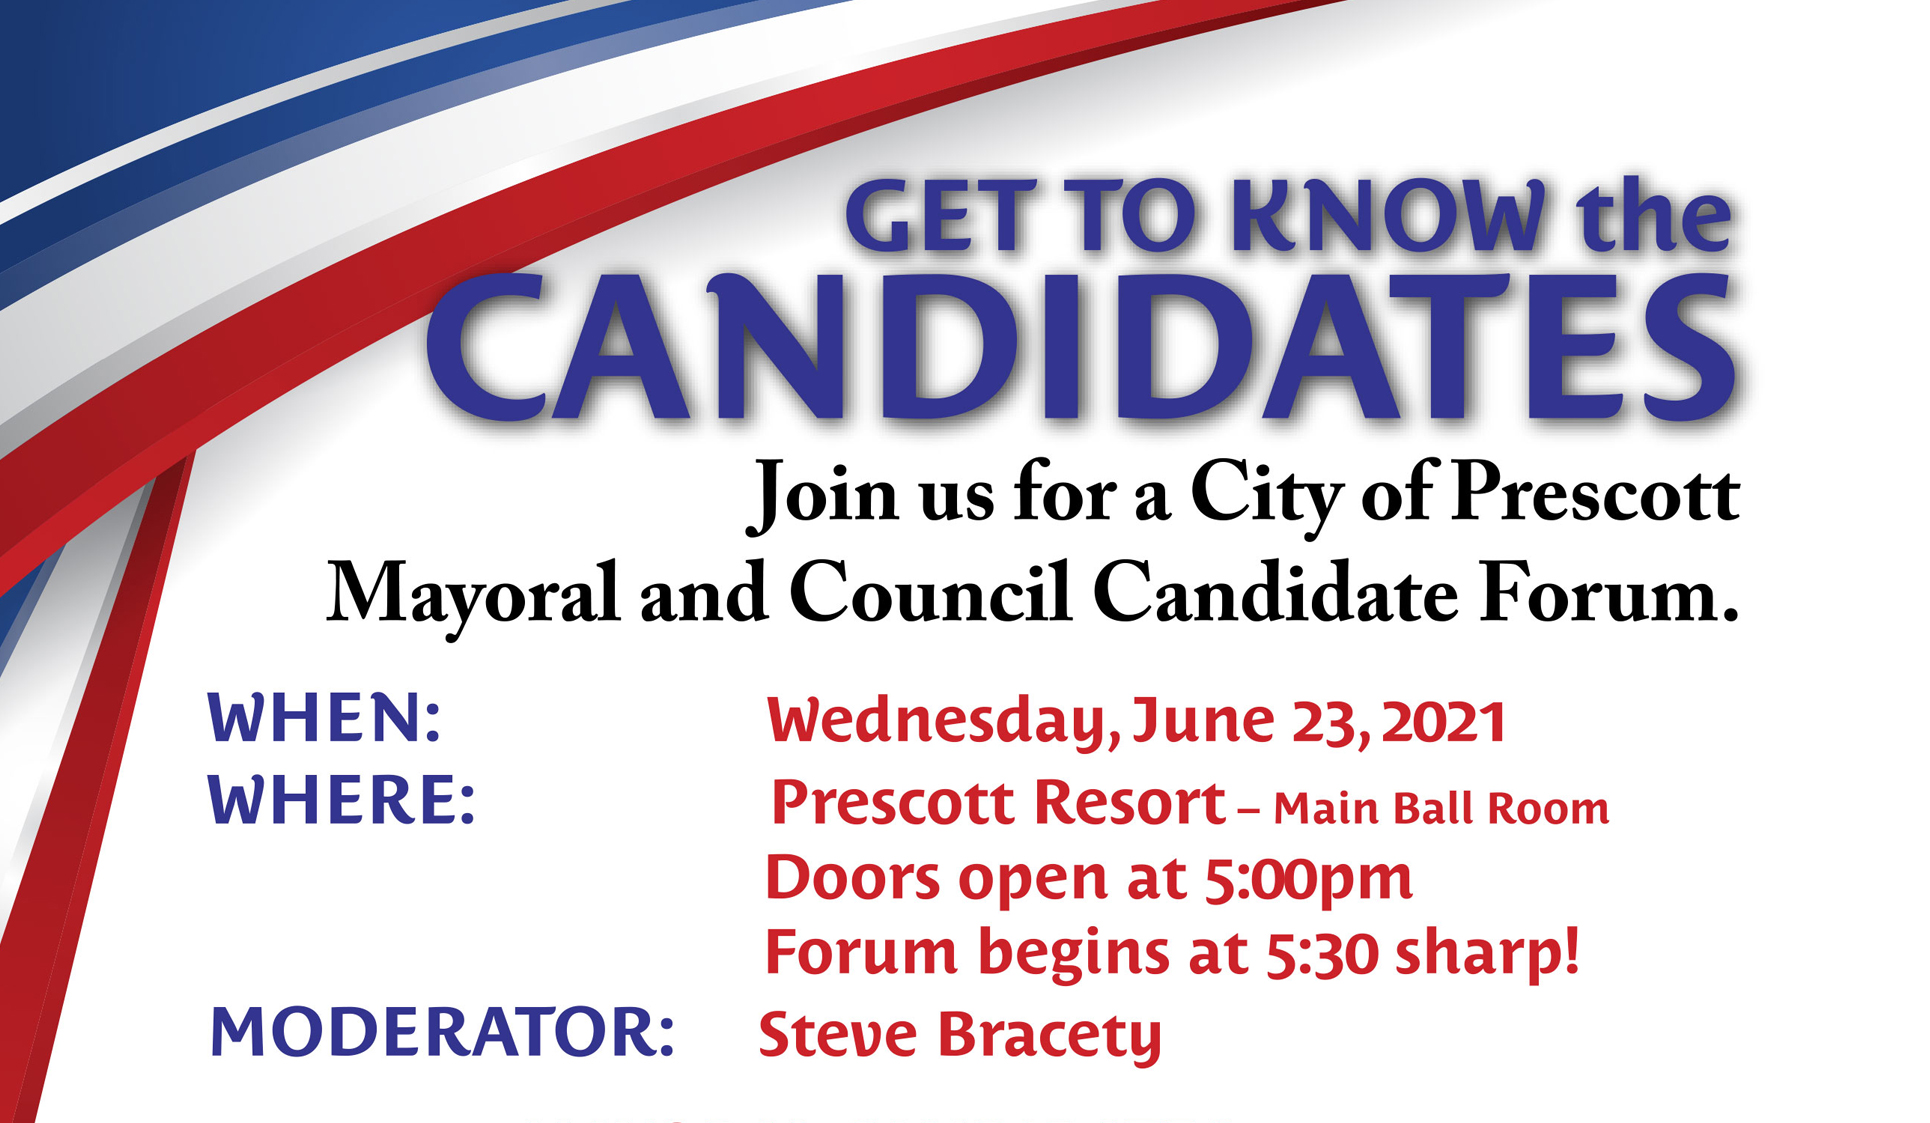 get-to-know-the-candidates-forum